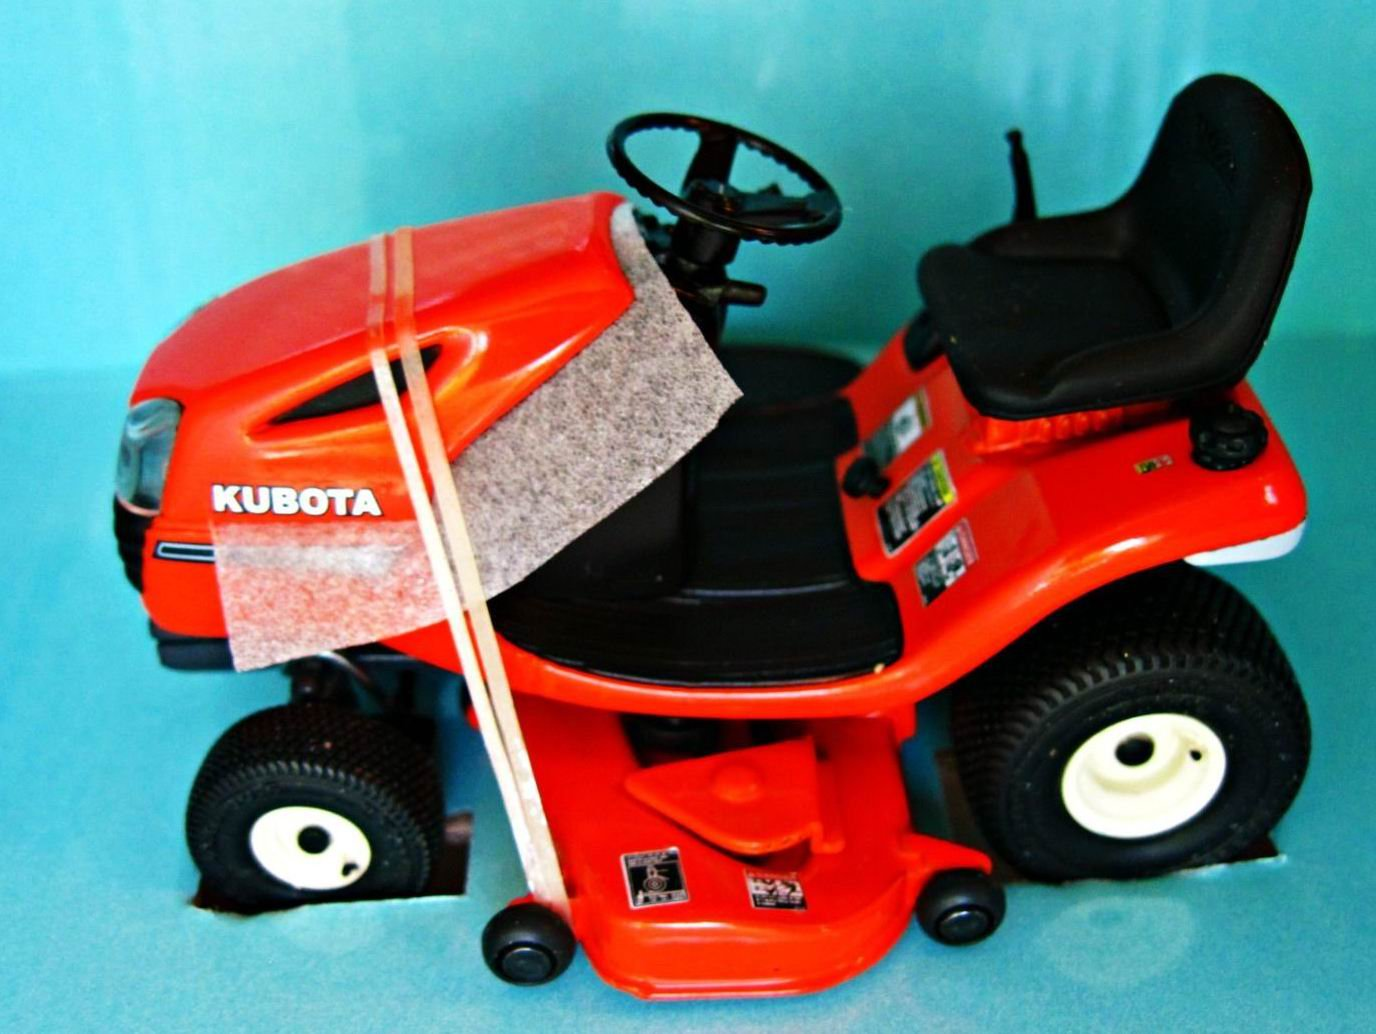 Kubota Lawn Mower Parts Lookup : Kubota t mower deck parts online tractor